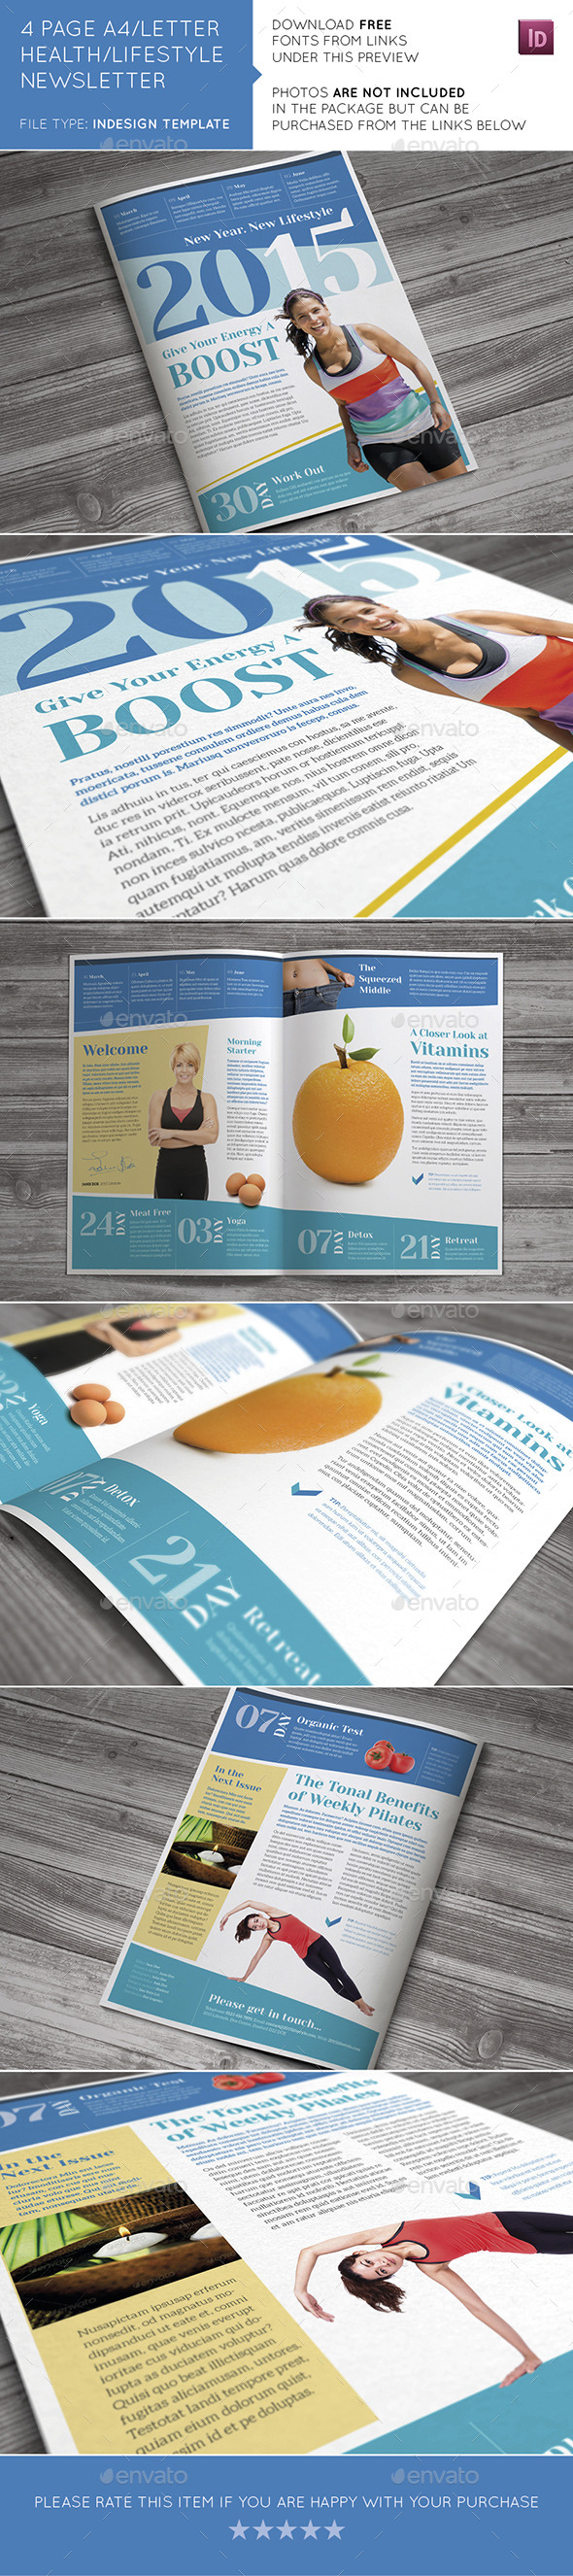 GraphicRiver 4 Page A4 and US Letter Health Lifestyle Newslette 10544675